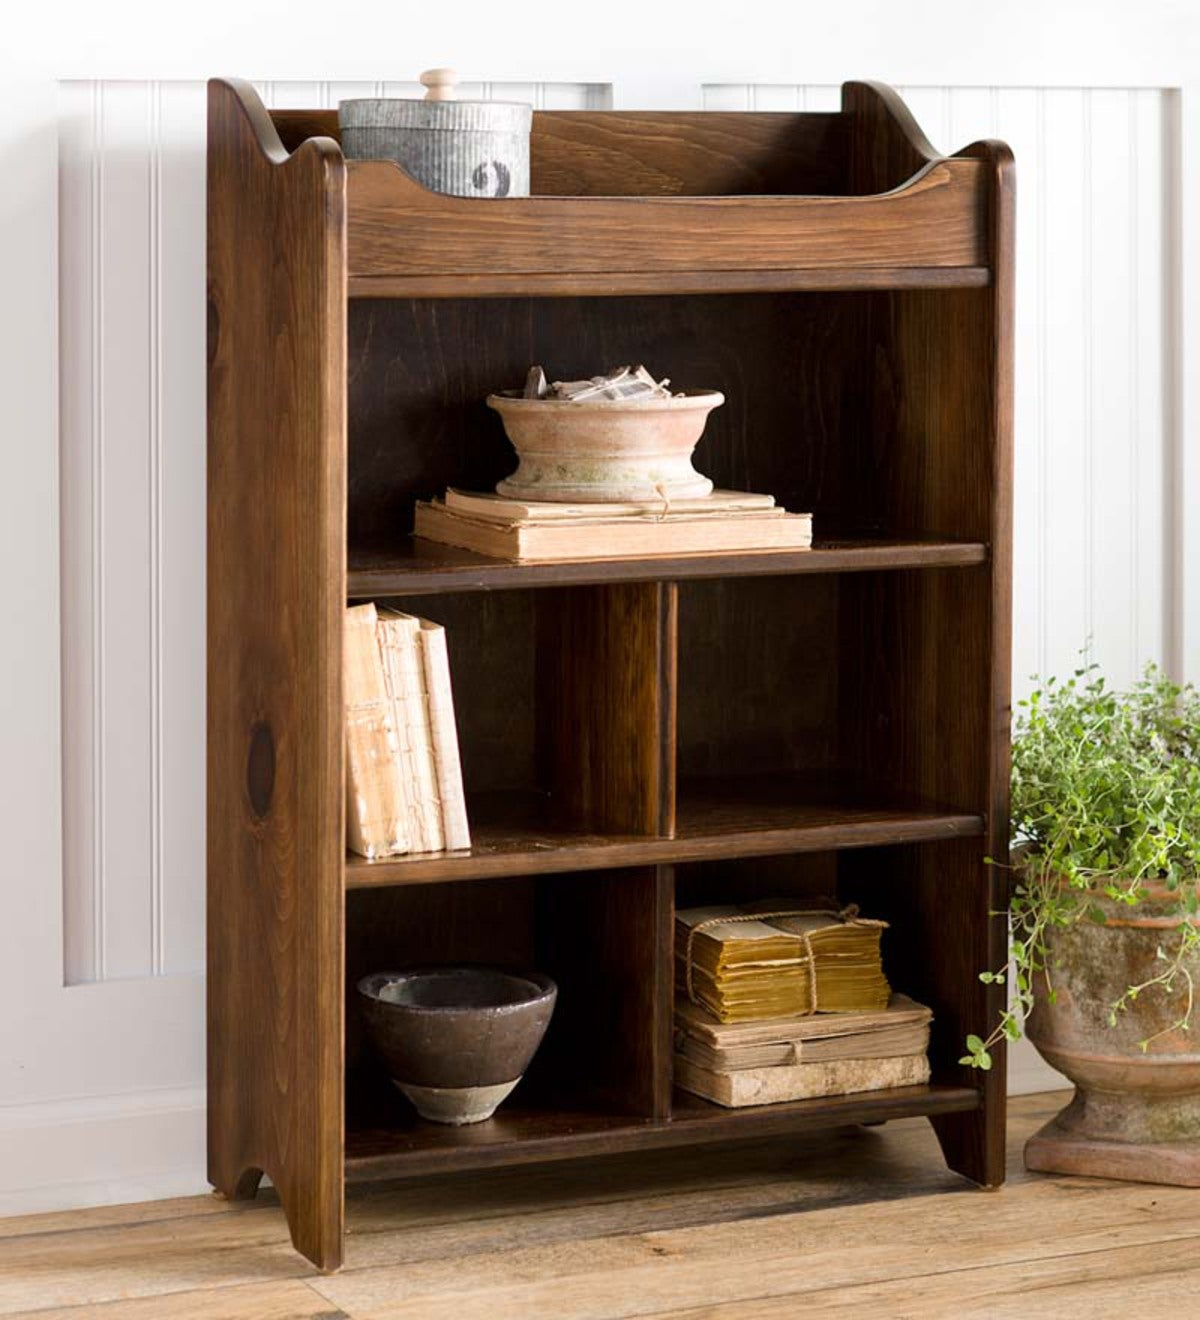 USA-Made Solid Pine Dry Sink Storage Cabinet